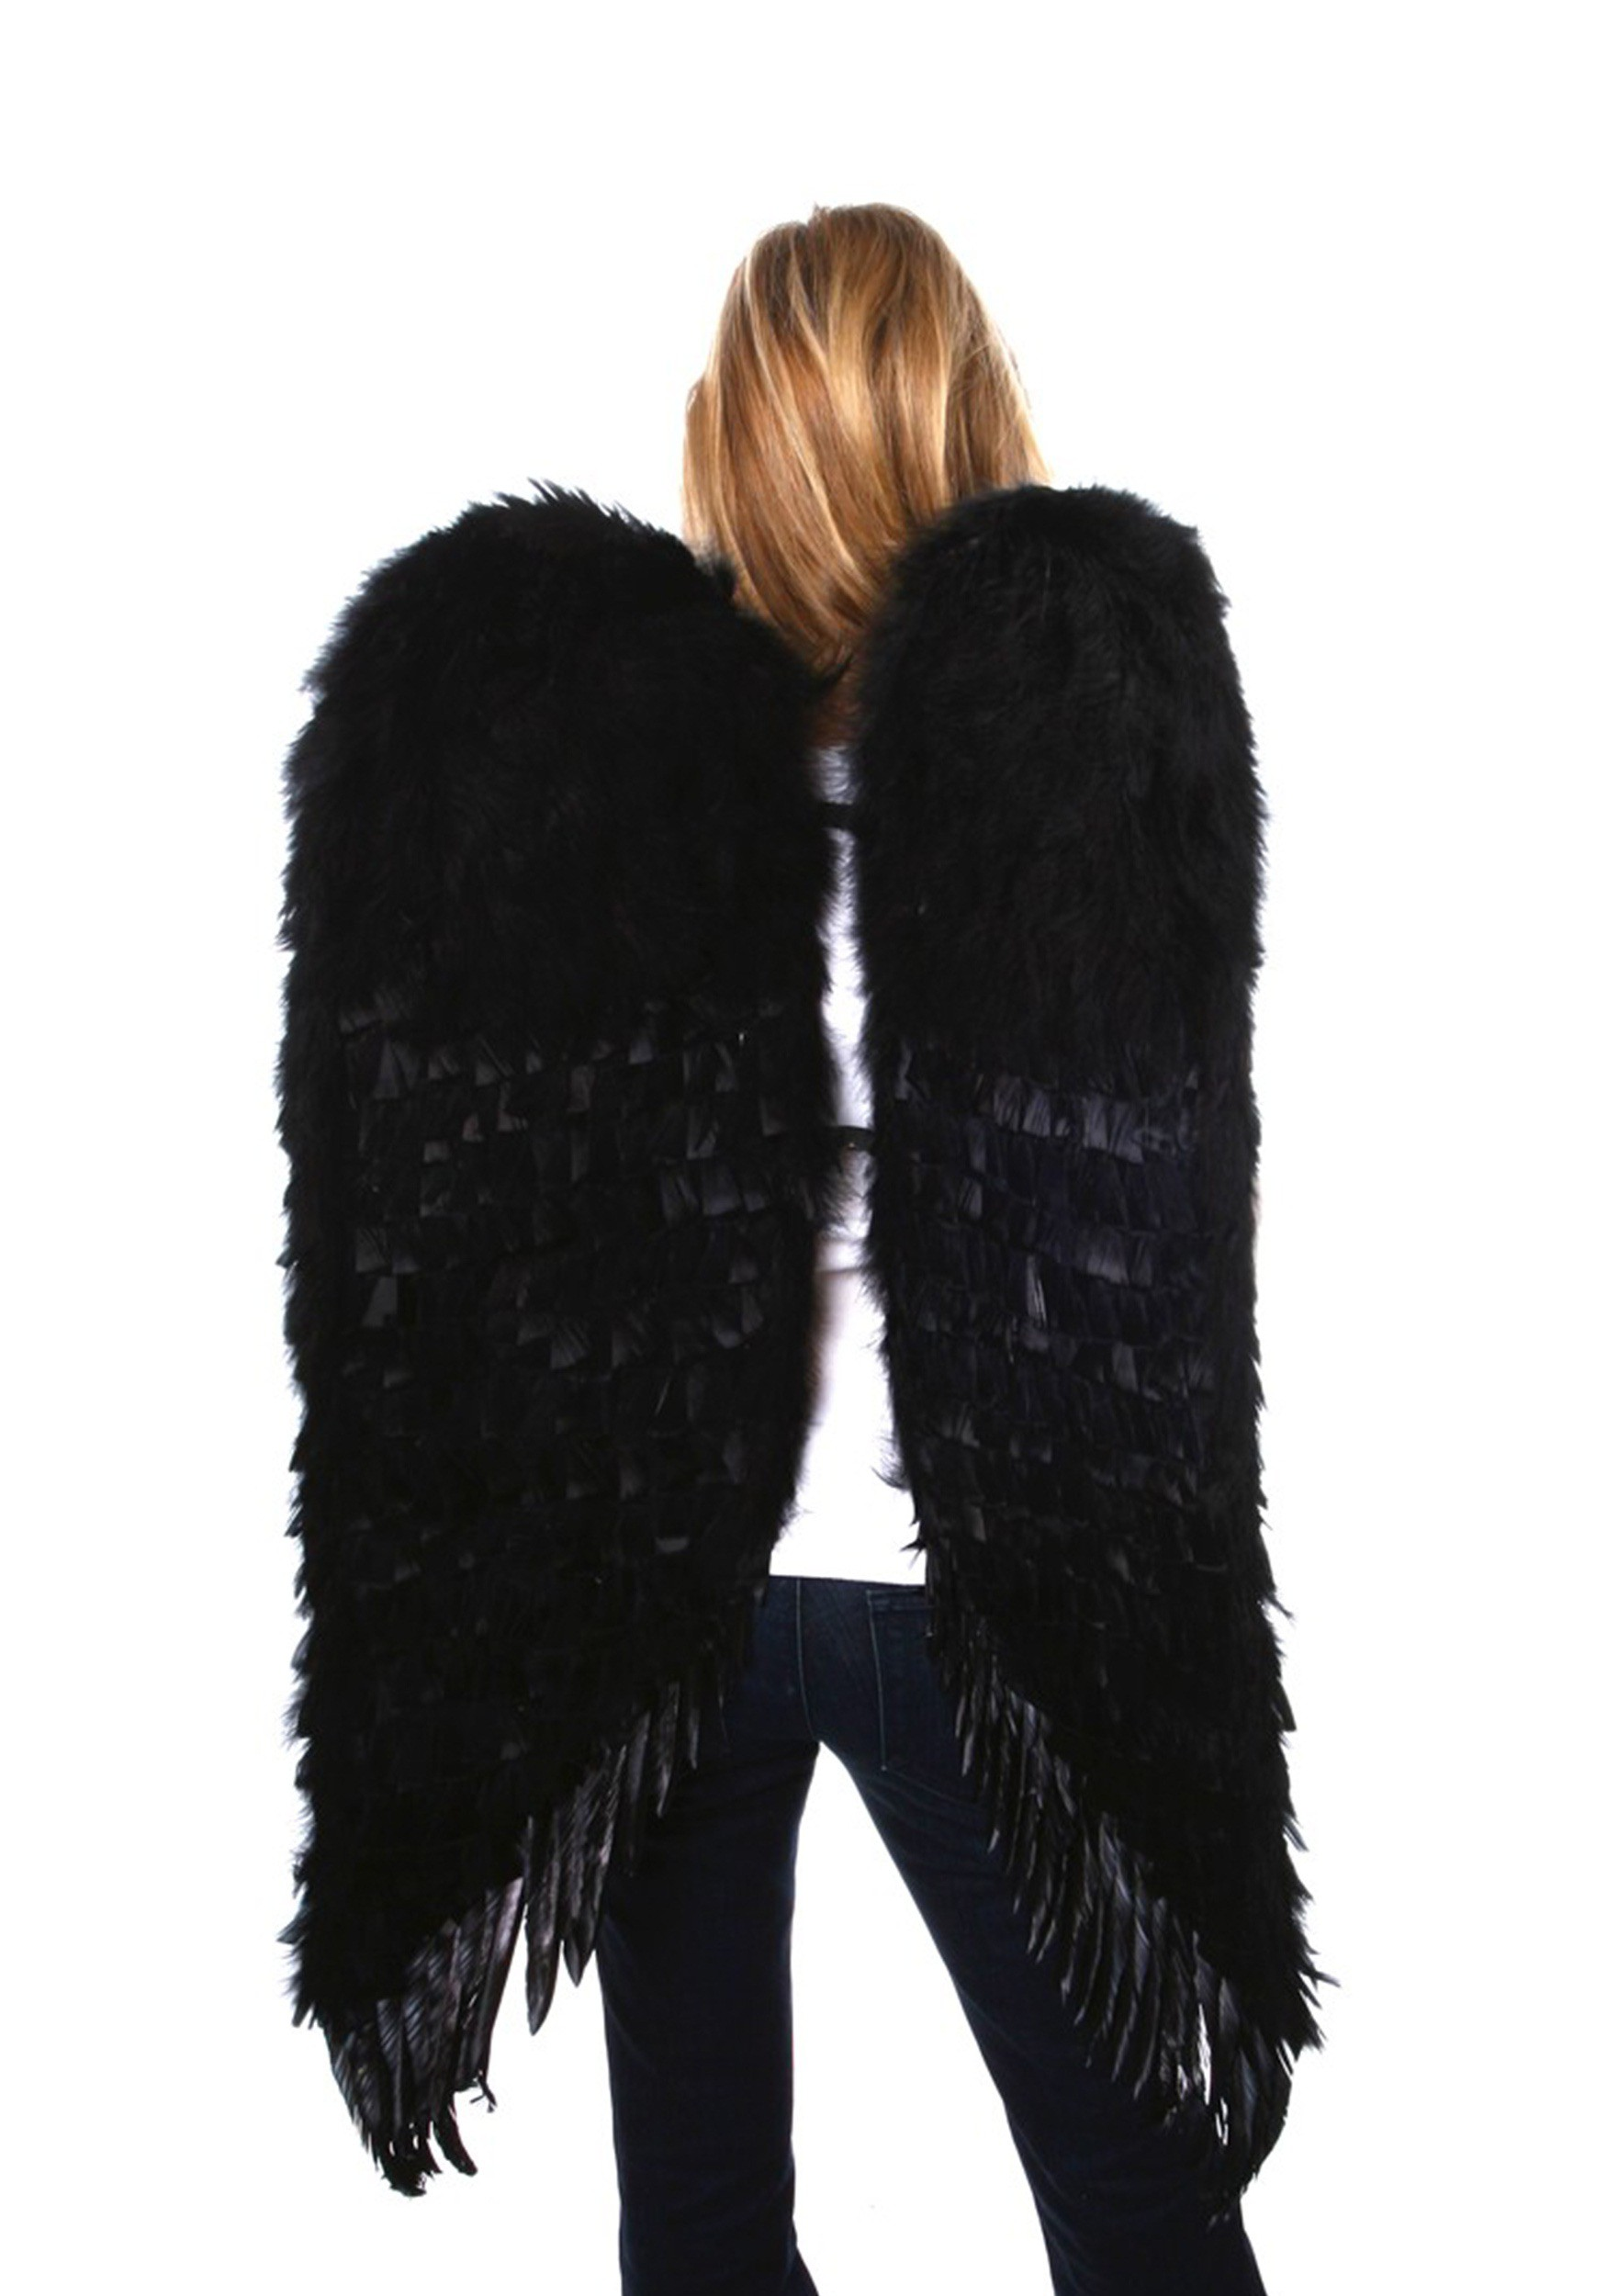 Huge sized feather angel wings are five feet tall, all hand-made ...